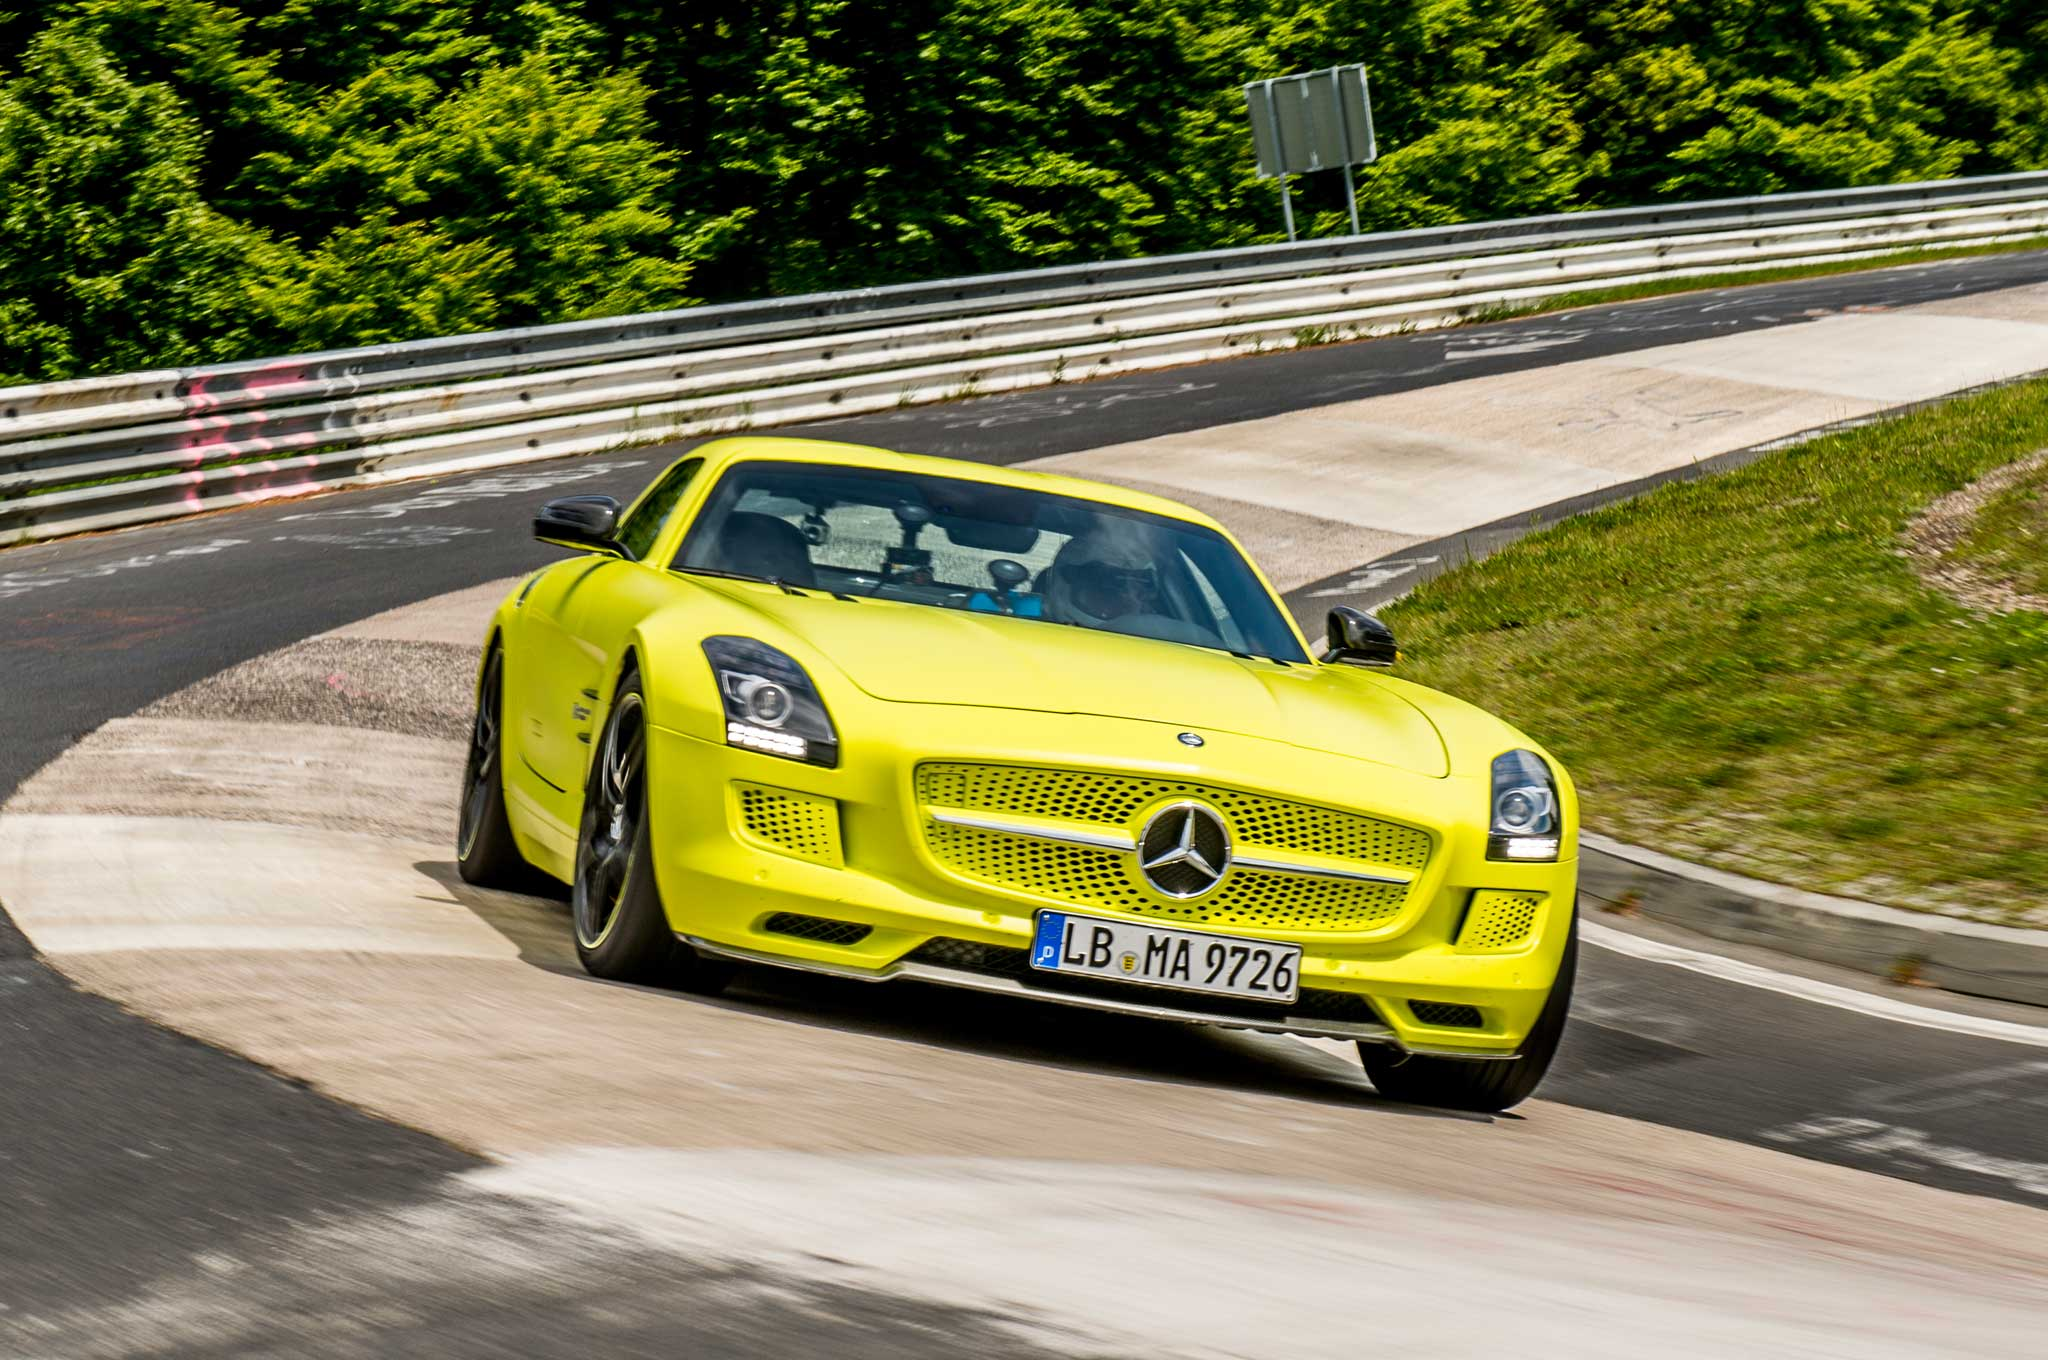 Electrification Could Force MercedesAMG to Reinvent Itself